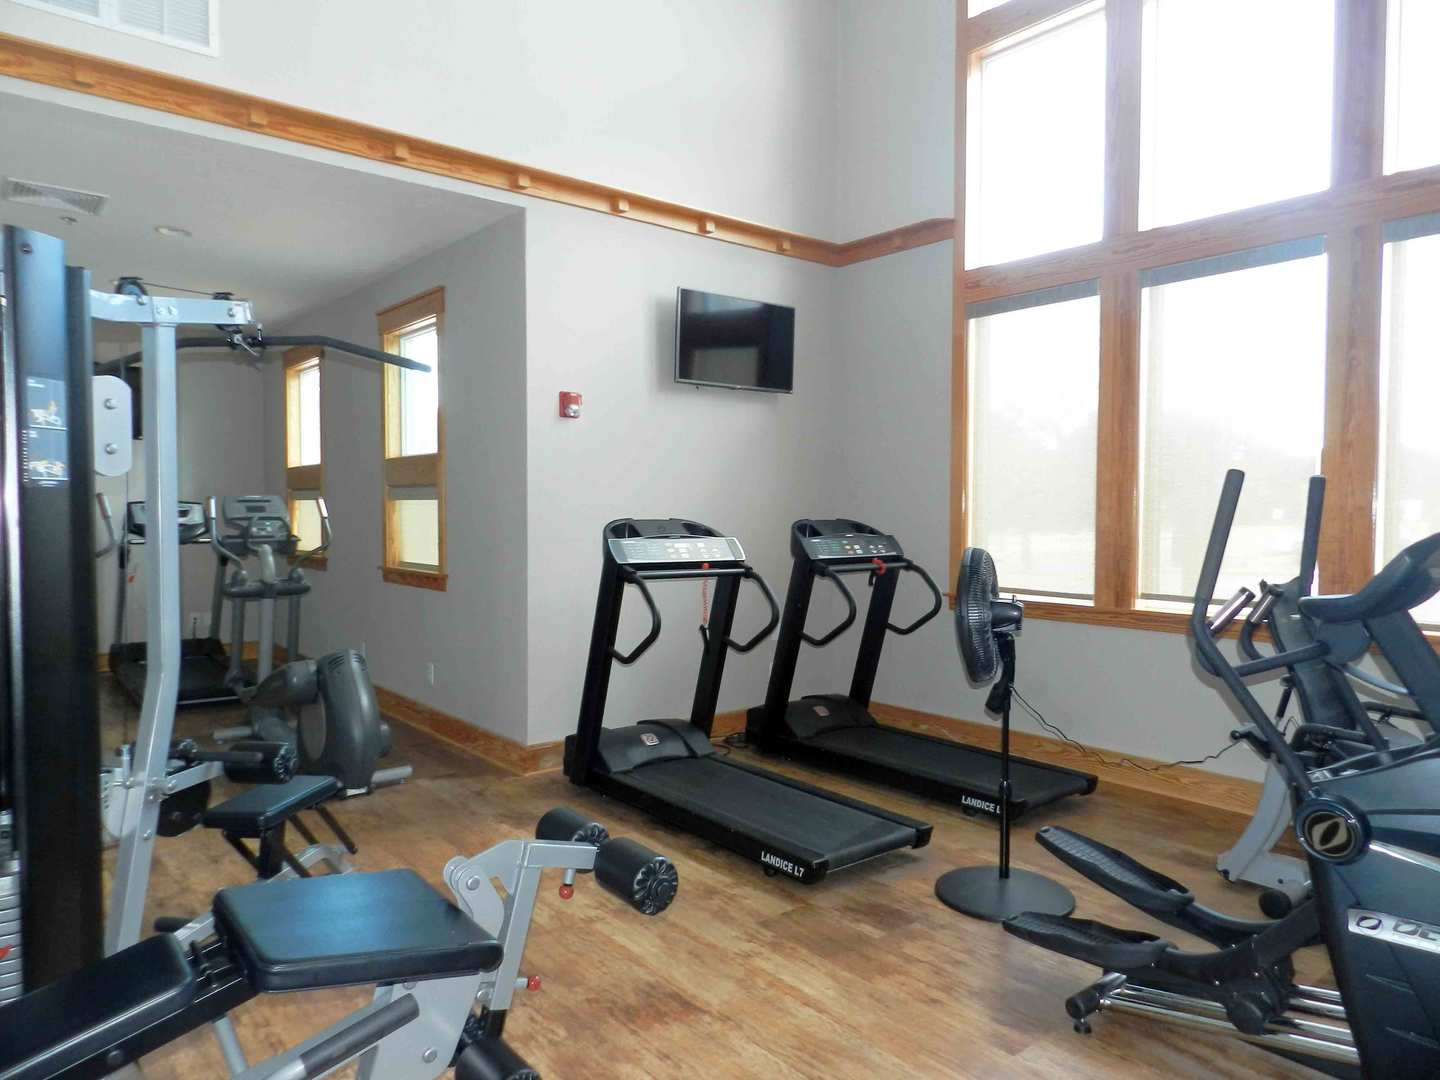 Fittness Center